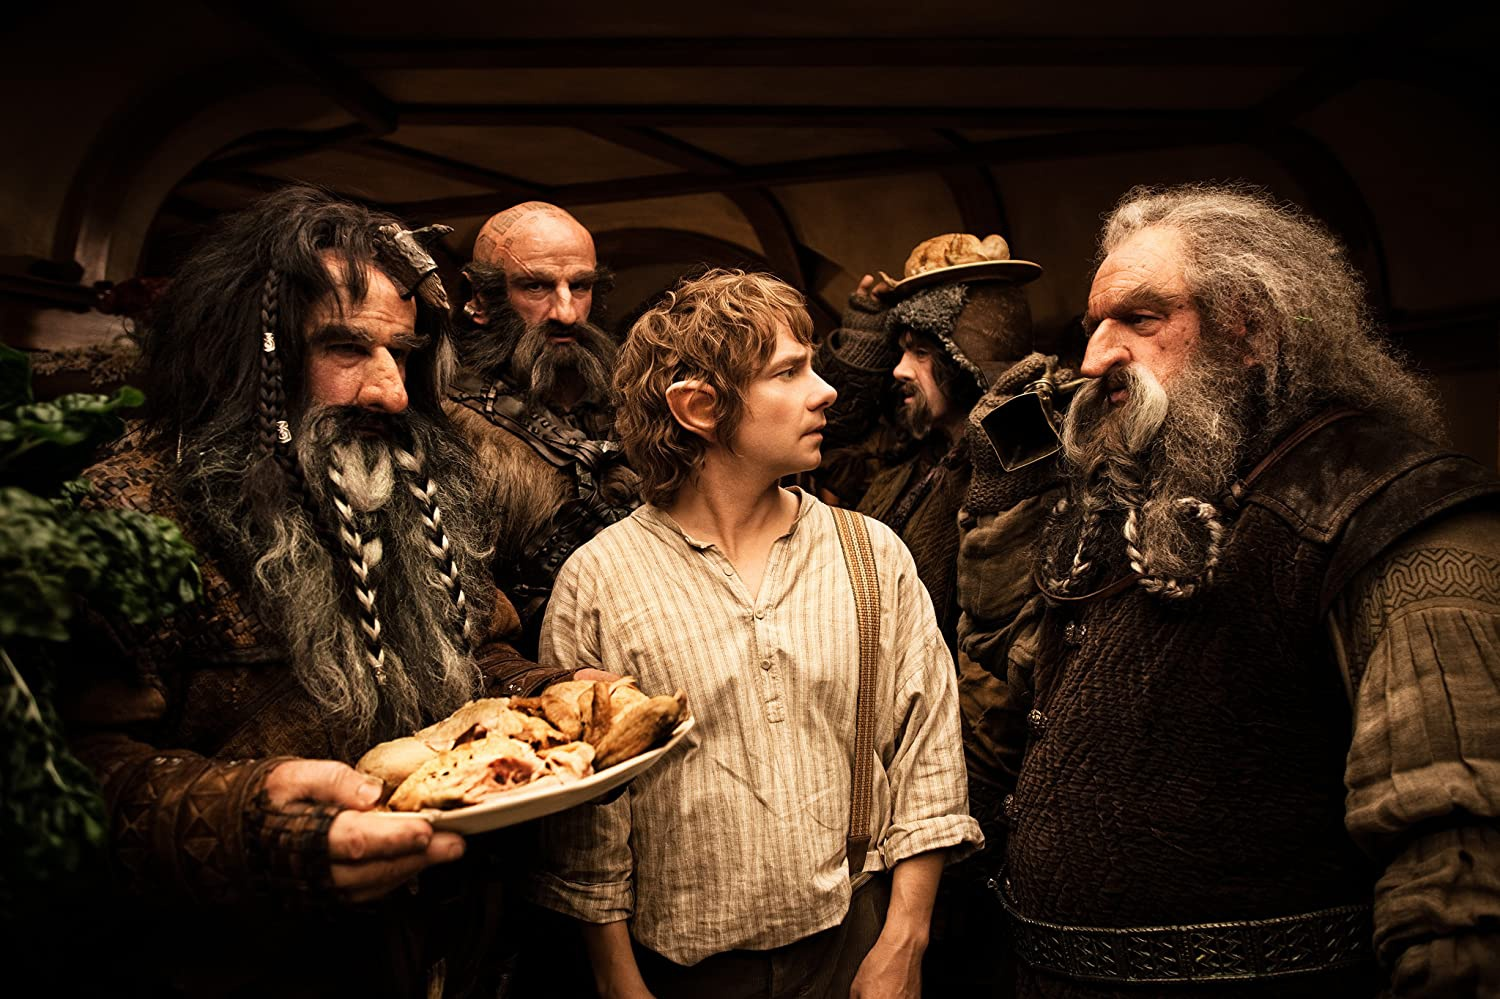 How the Prosthetics Team Behind 'The Lord of the Rings' Brings Creatures to Life